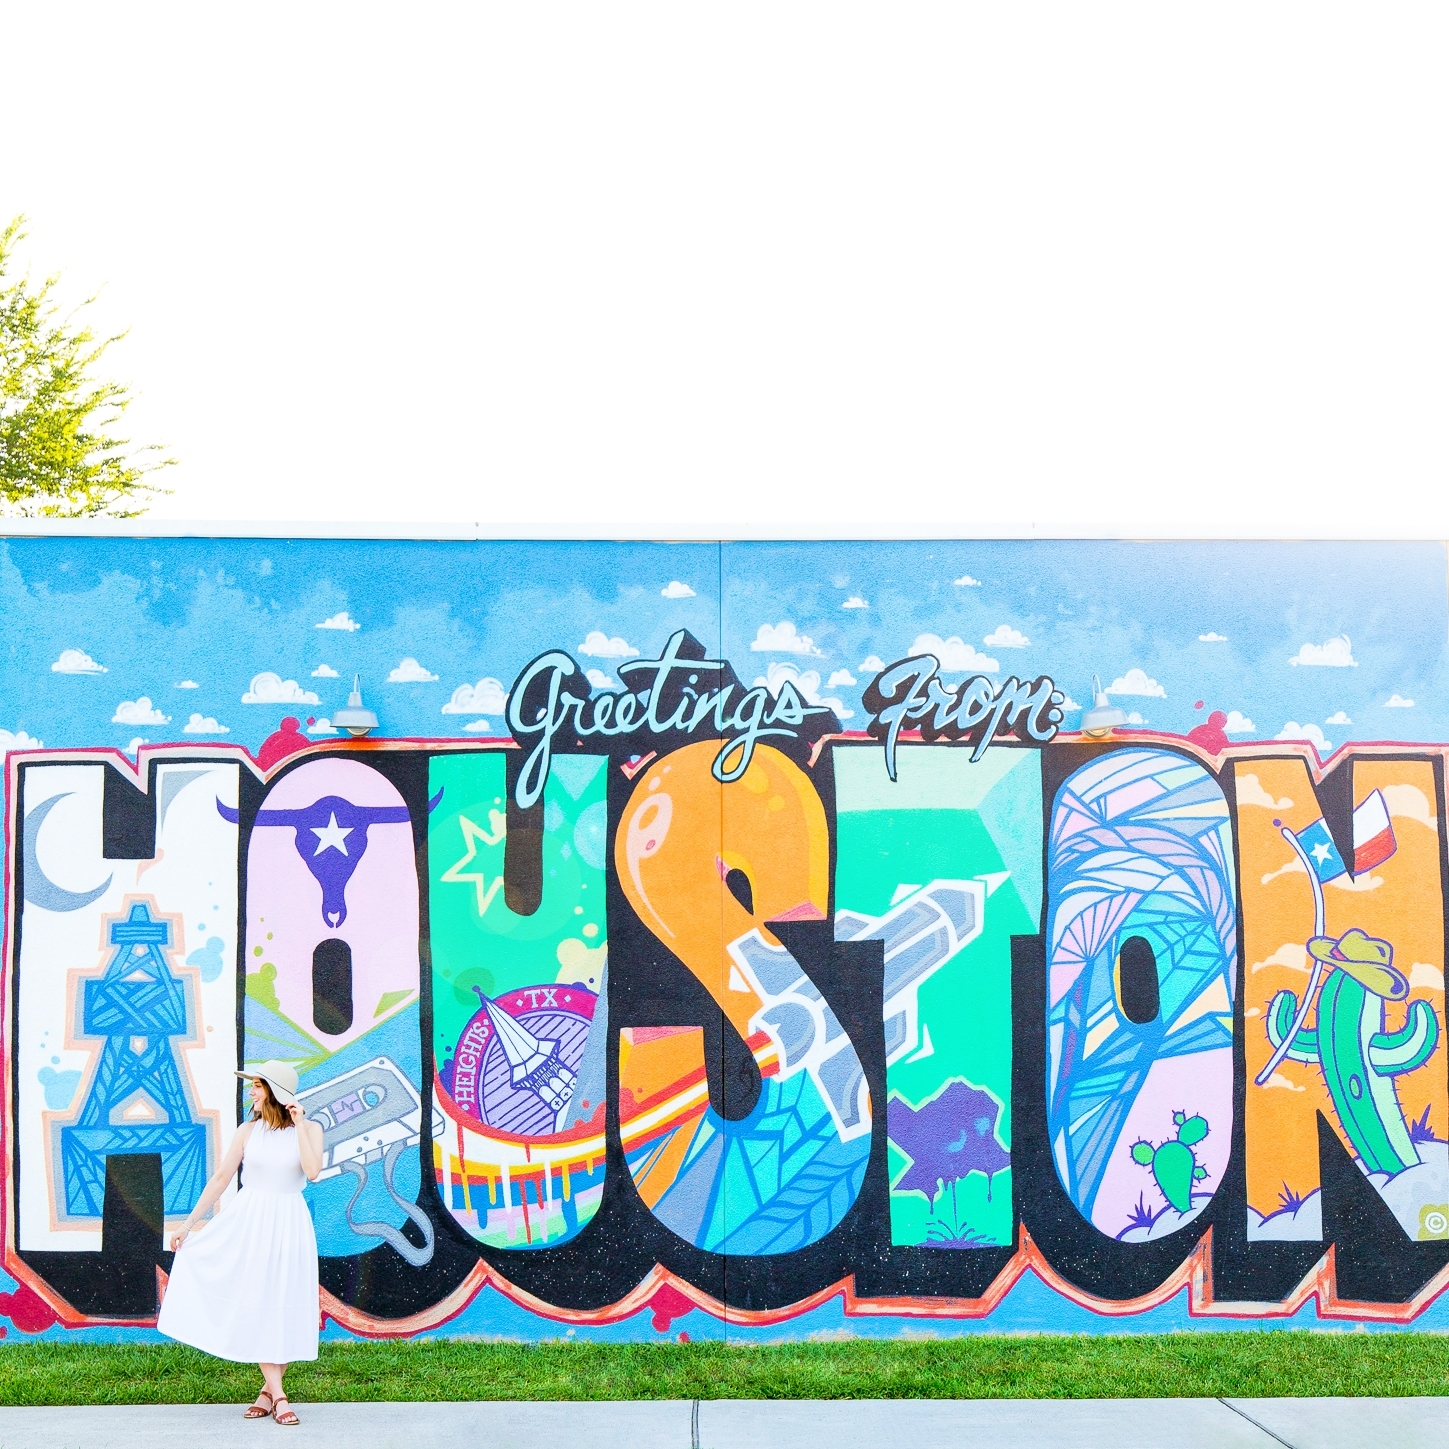 Studiodiywallcrawl: The Best Walls In Houston – Studio Diy Inside Most Recently Released Houston Wall Art (View 20 of 20)